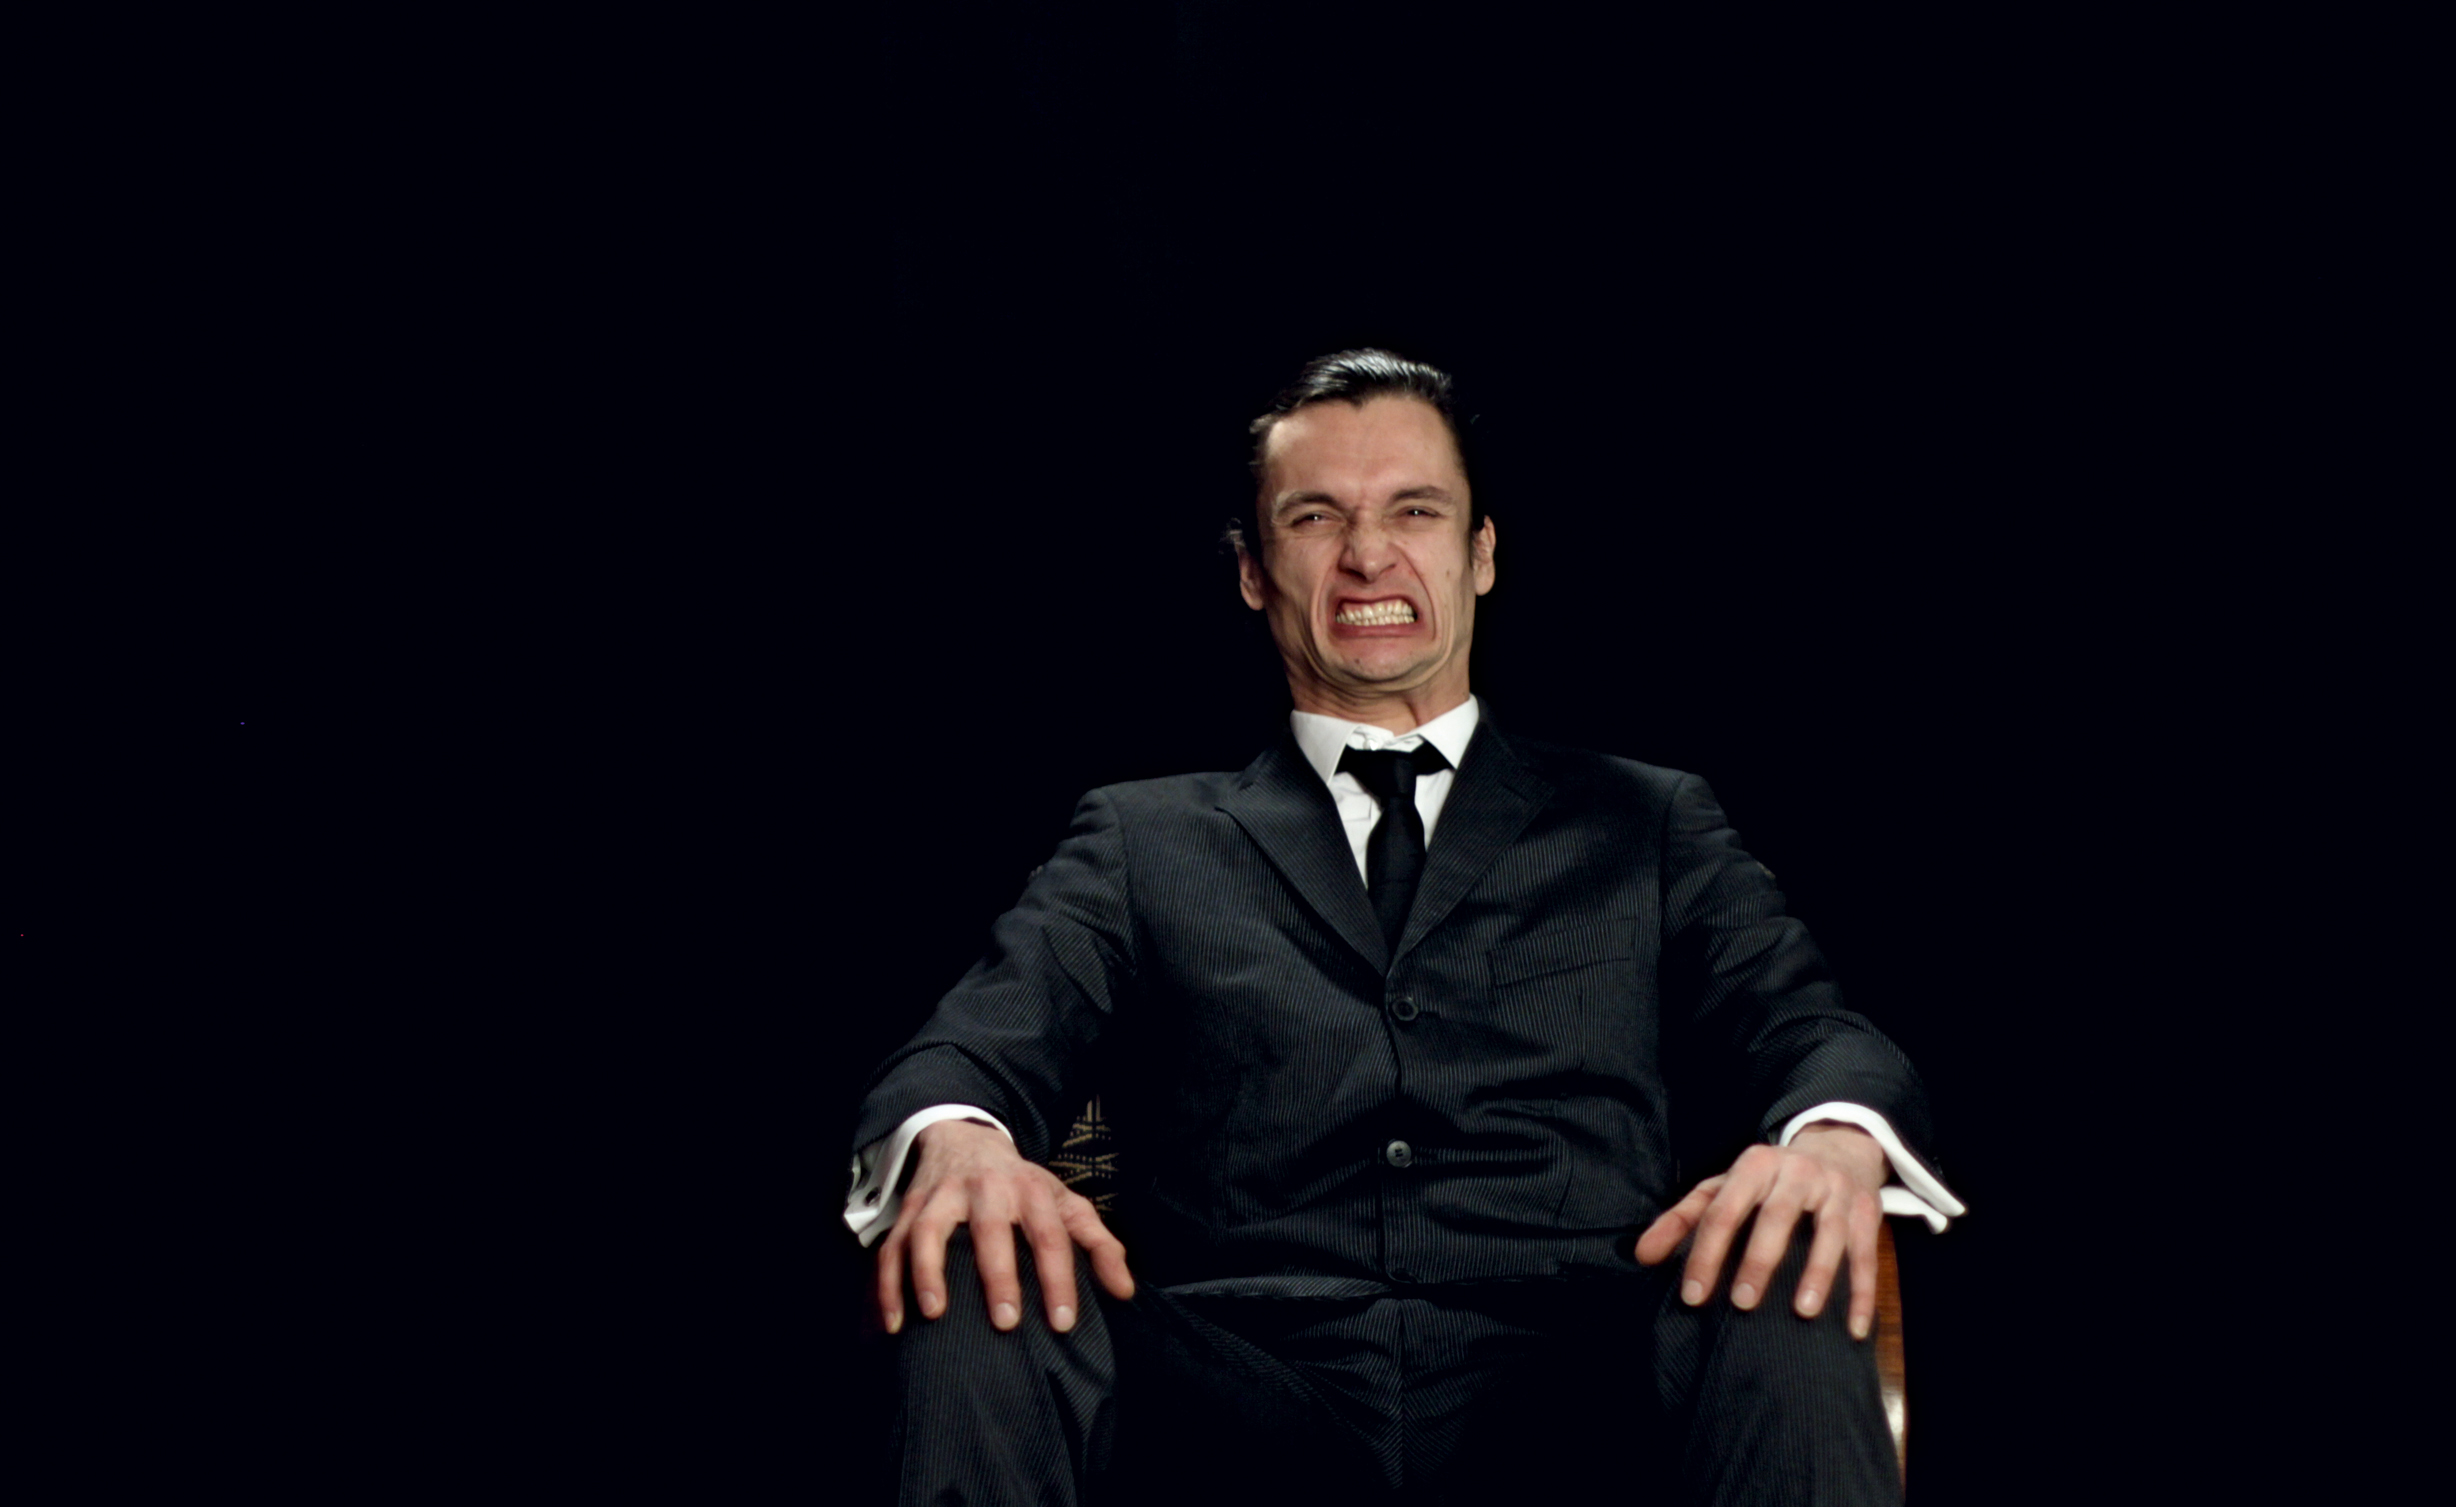 Mattias Härenstam, Portrait of a smiling man (video still), 2010. Image courtesy of the artist.